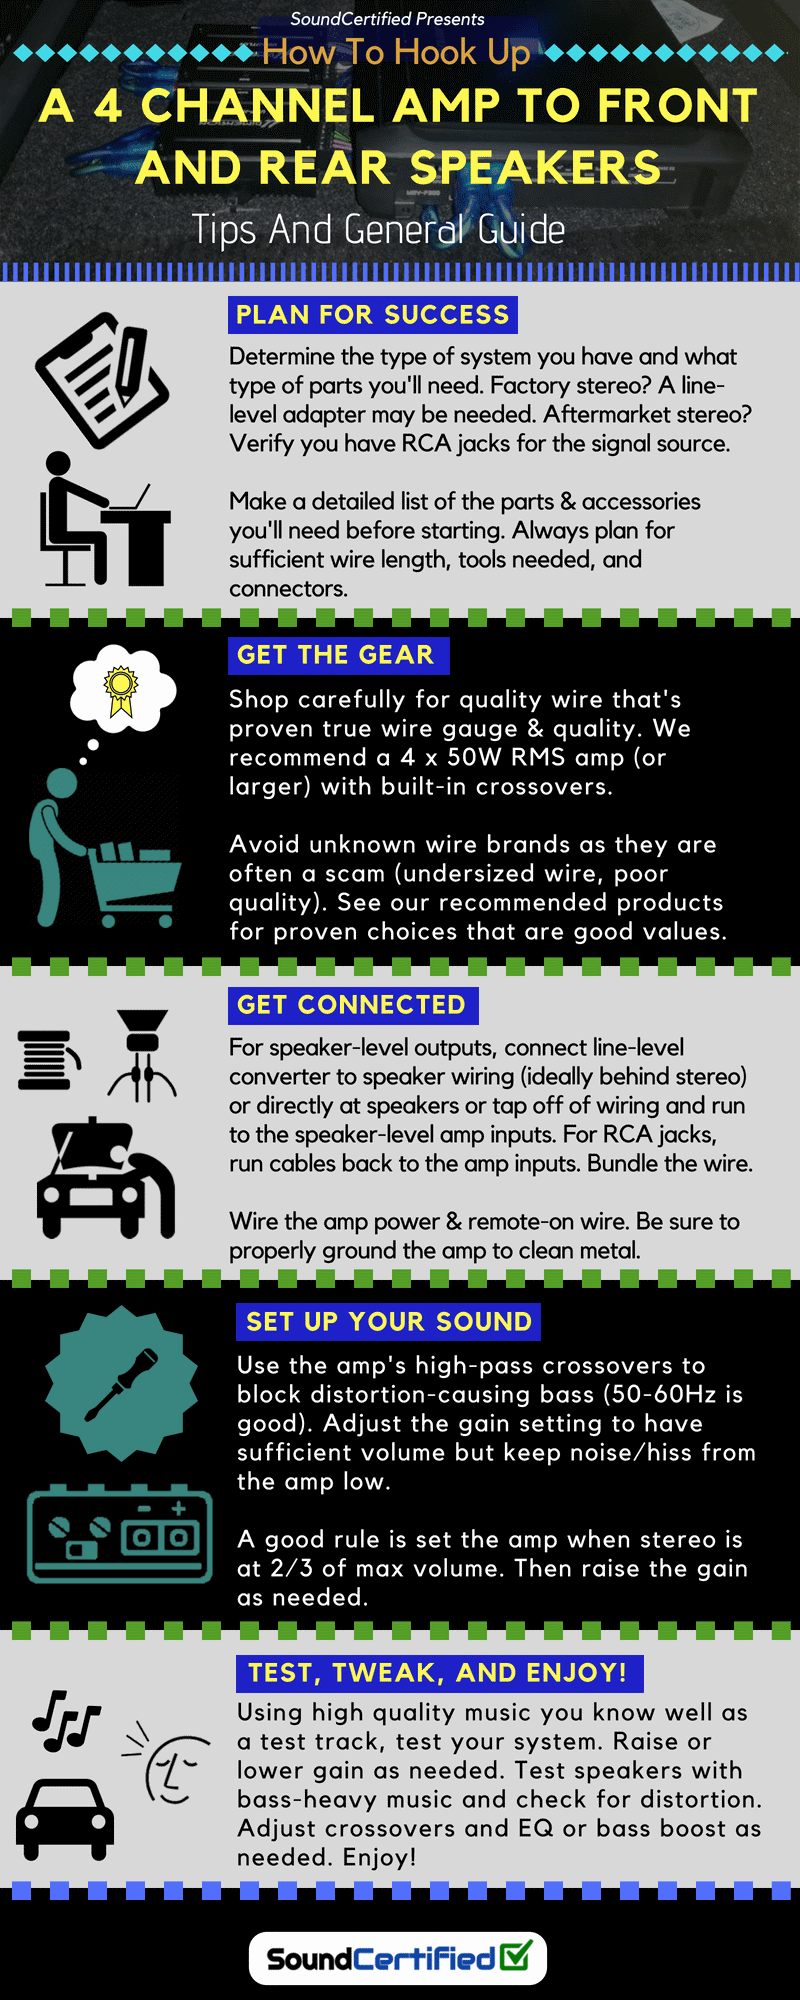 How To Hook Up A 4 Channel Amp Front And Rear Speakers Sound Iv Wiring The Frequency Inverter Setting Infographic Diagram